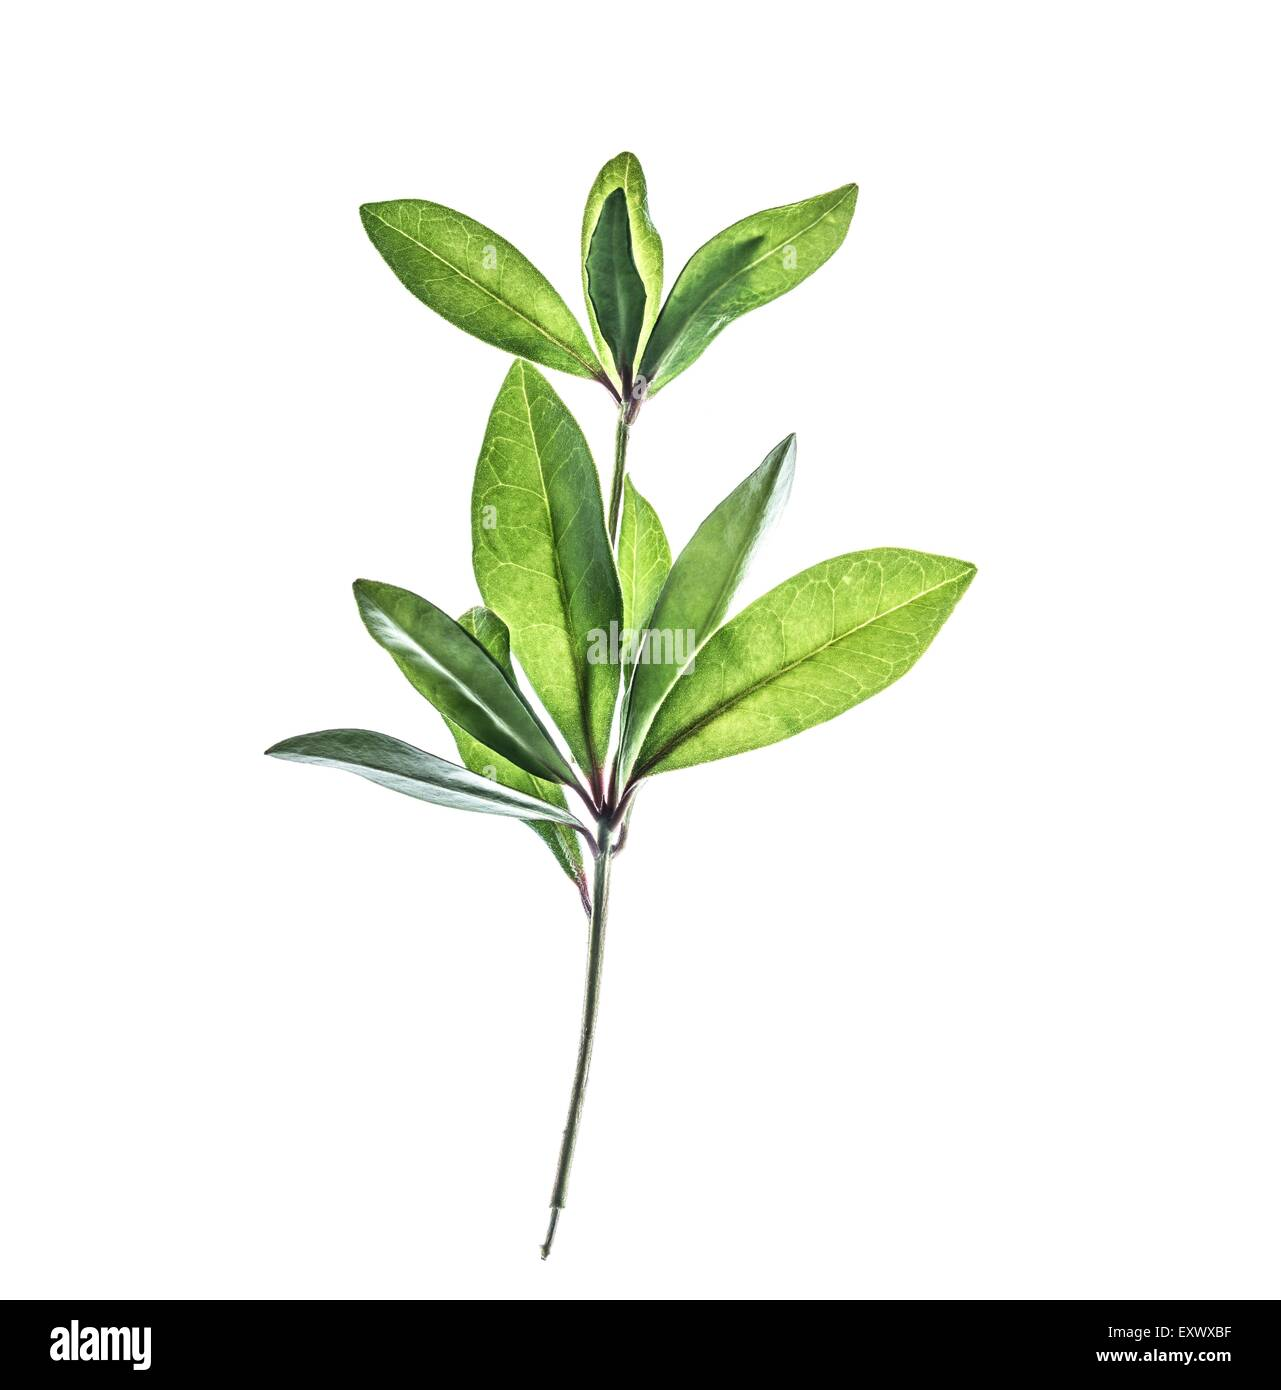 Cherry laurel twig - Stock Image